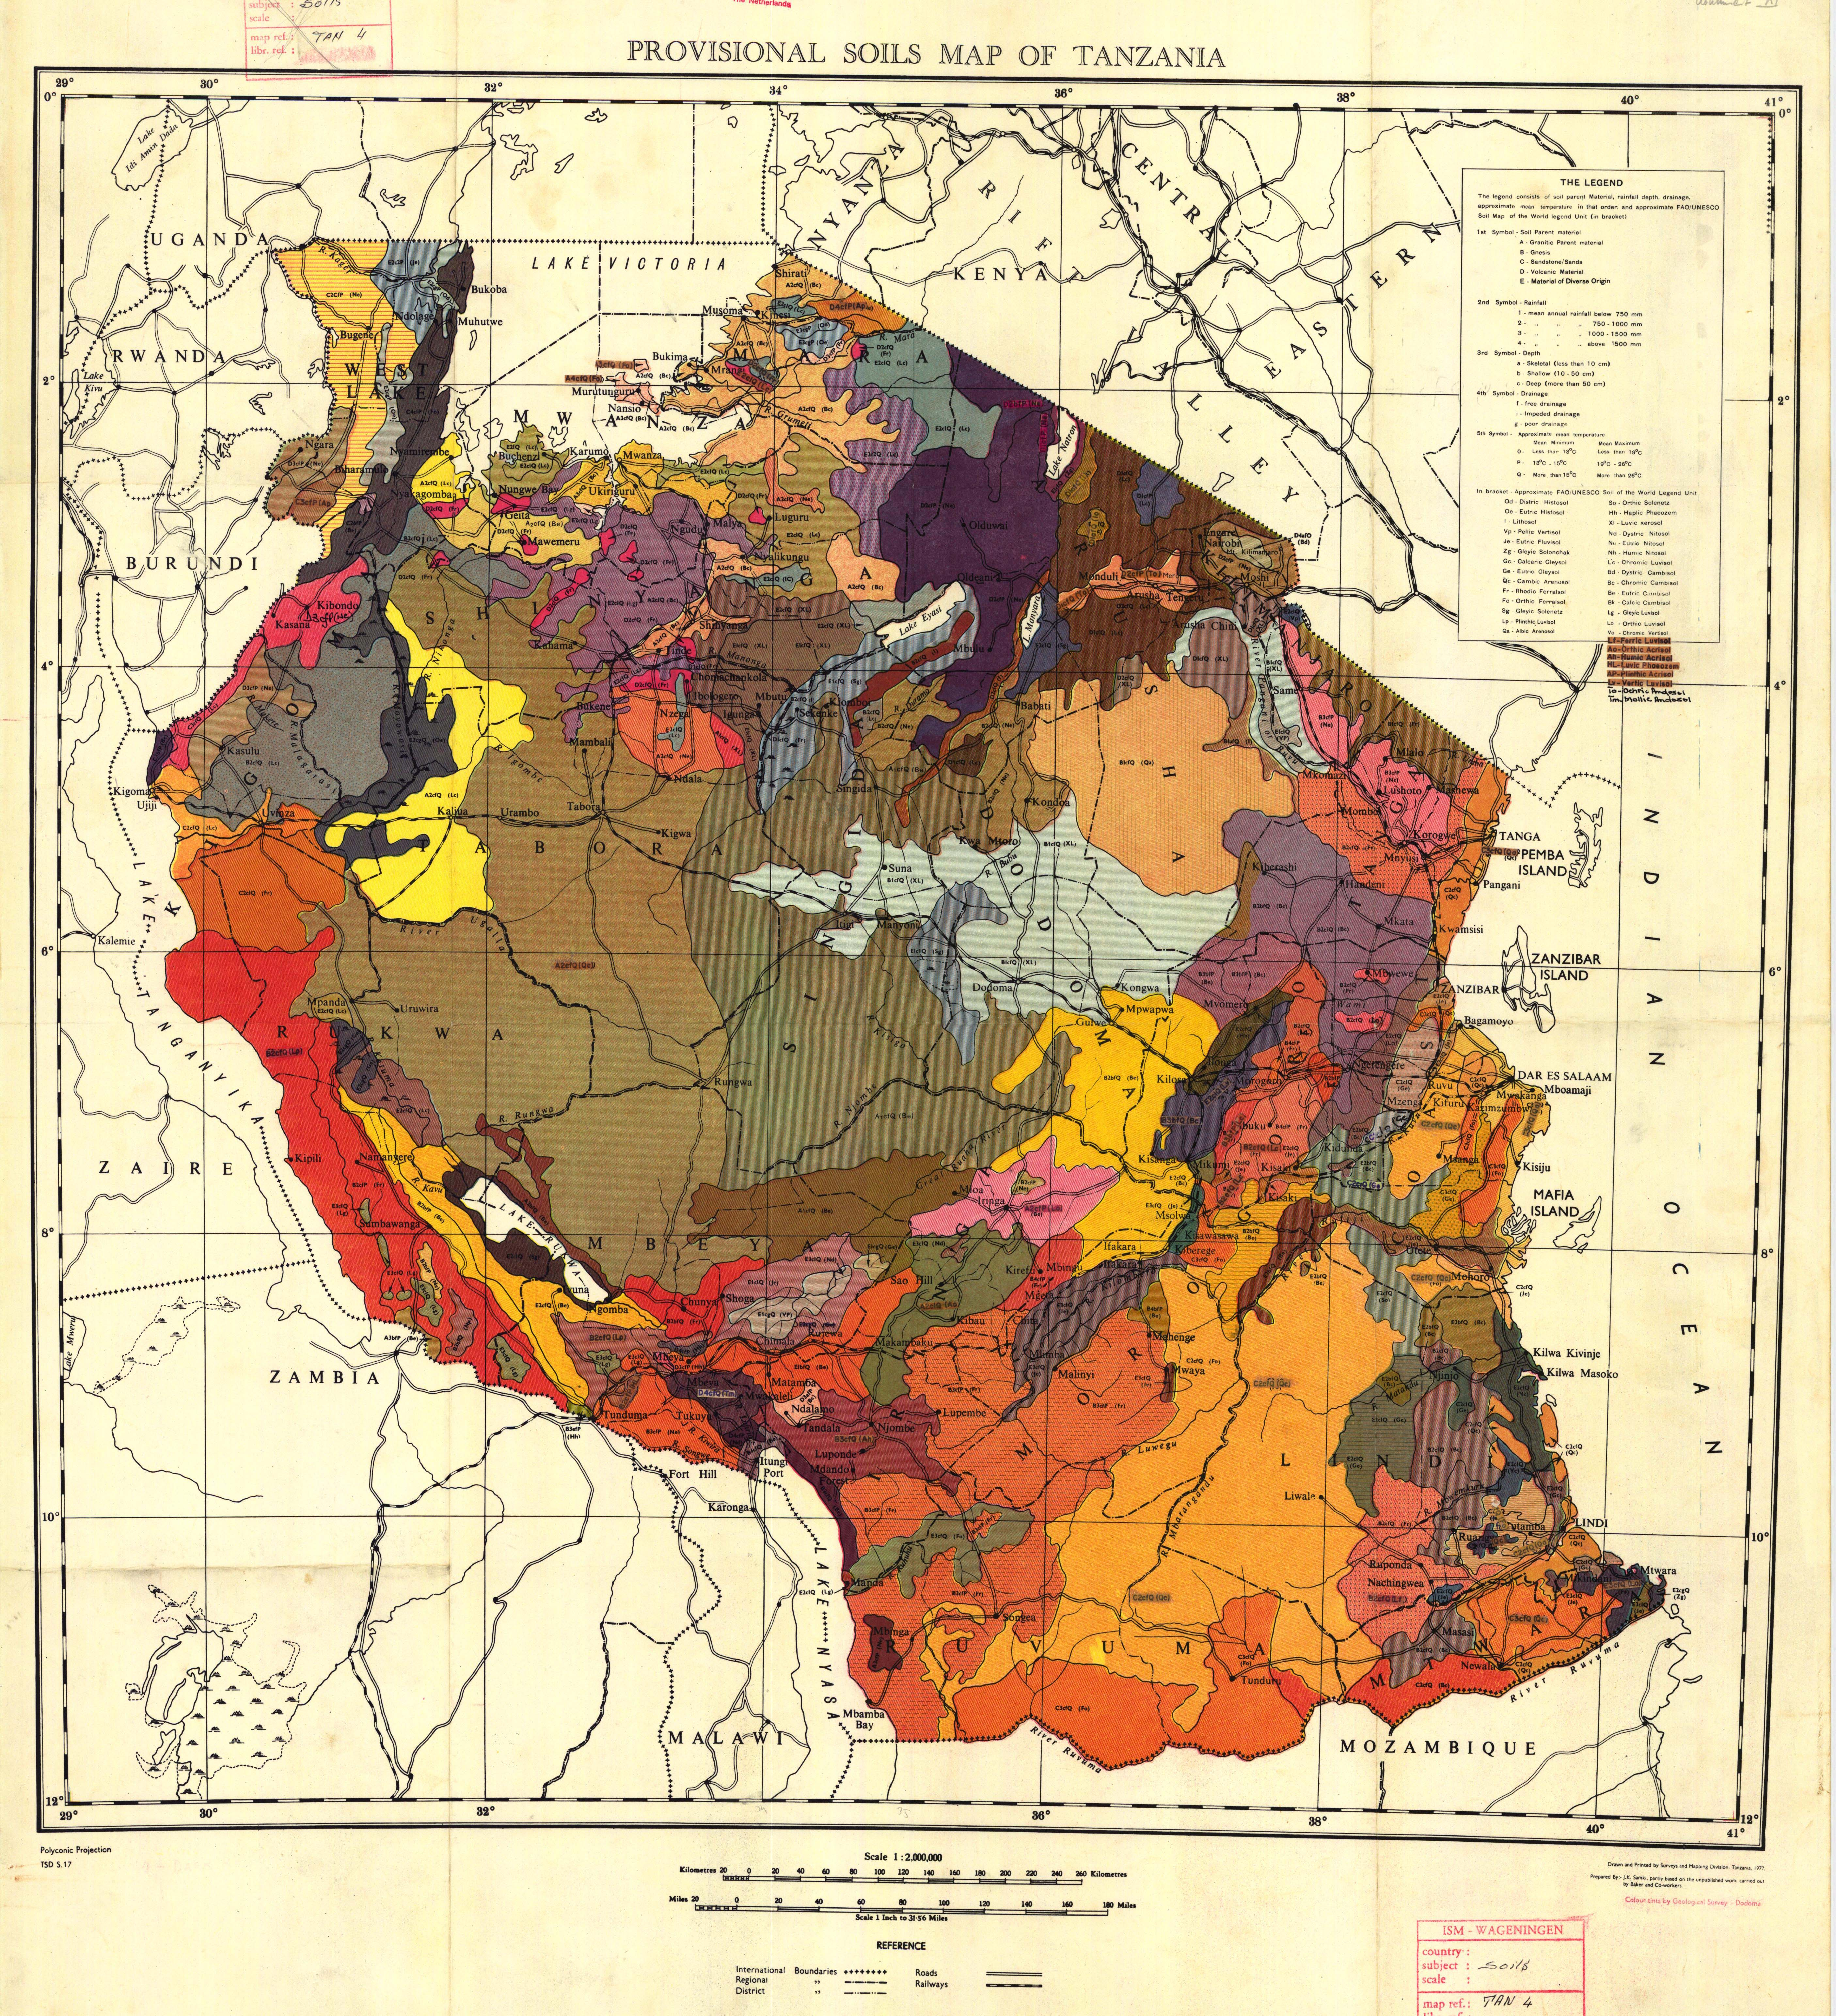 Provisional soils map of tanzania esdac european commission download gumiabroncs Image collections